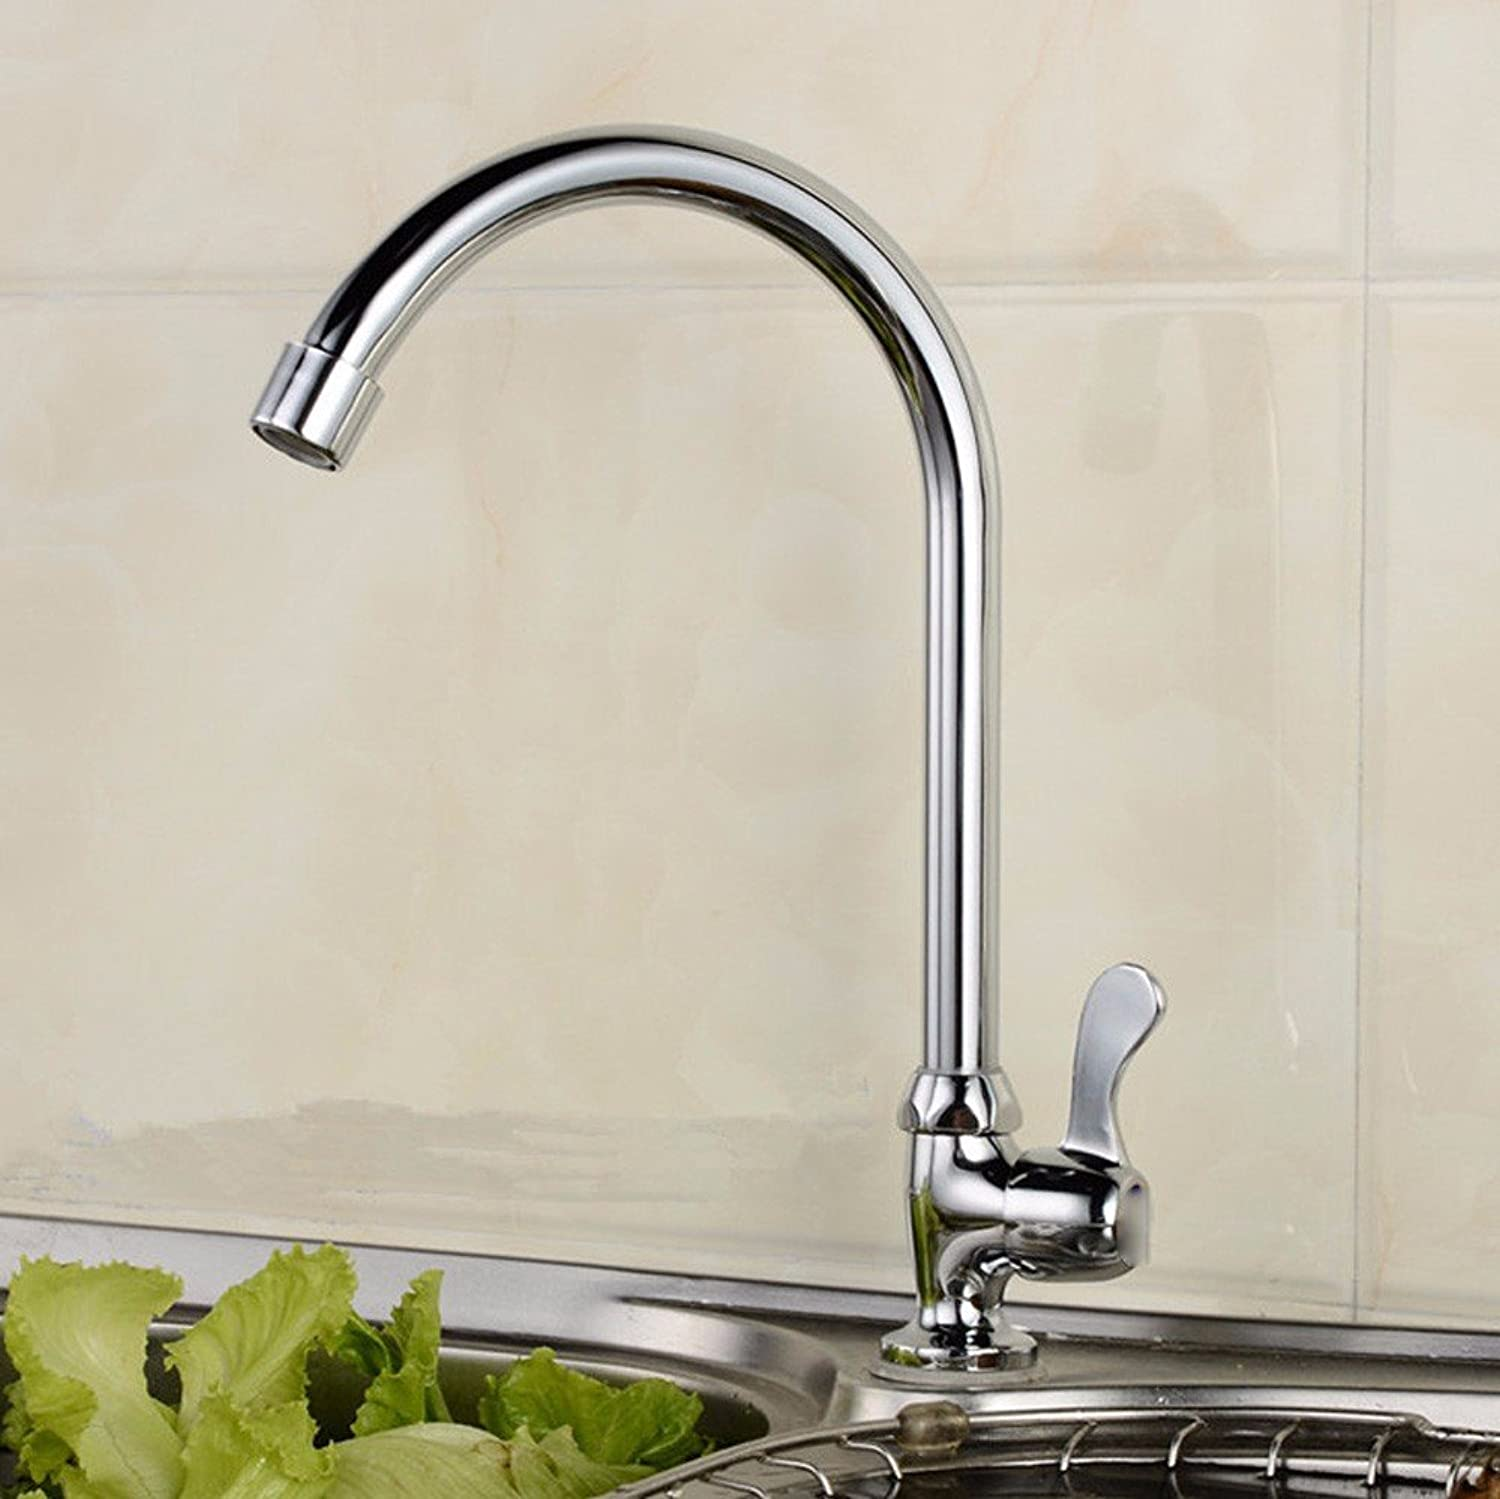 Commercial Single Lever Pull Down Kitchen Sink Faucet Brass Brass Brass Constructed Polished Single Copper Single Hole Faucet, Kitchen Single Cold Sink Sink Faucet, Ceramic Valve Spool redator f8e655